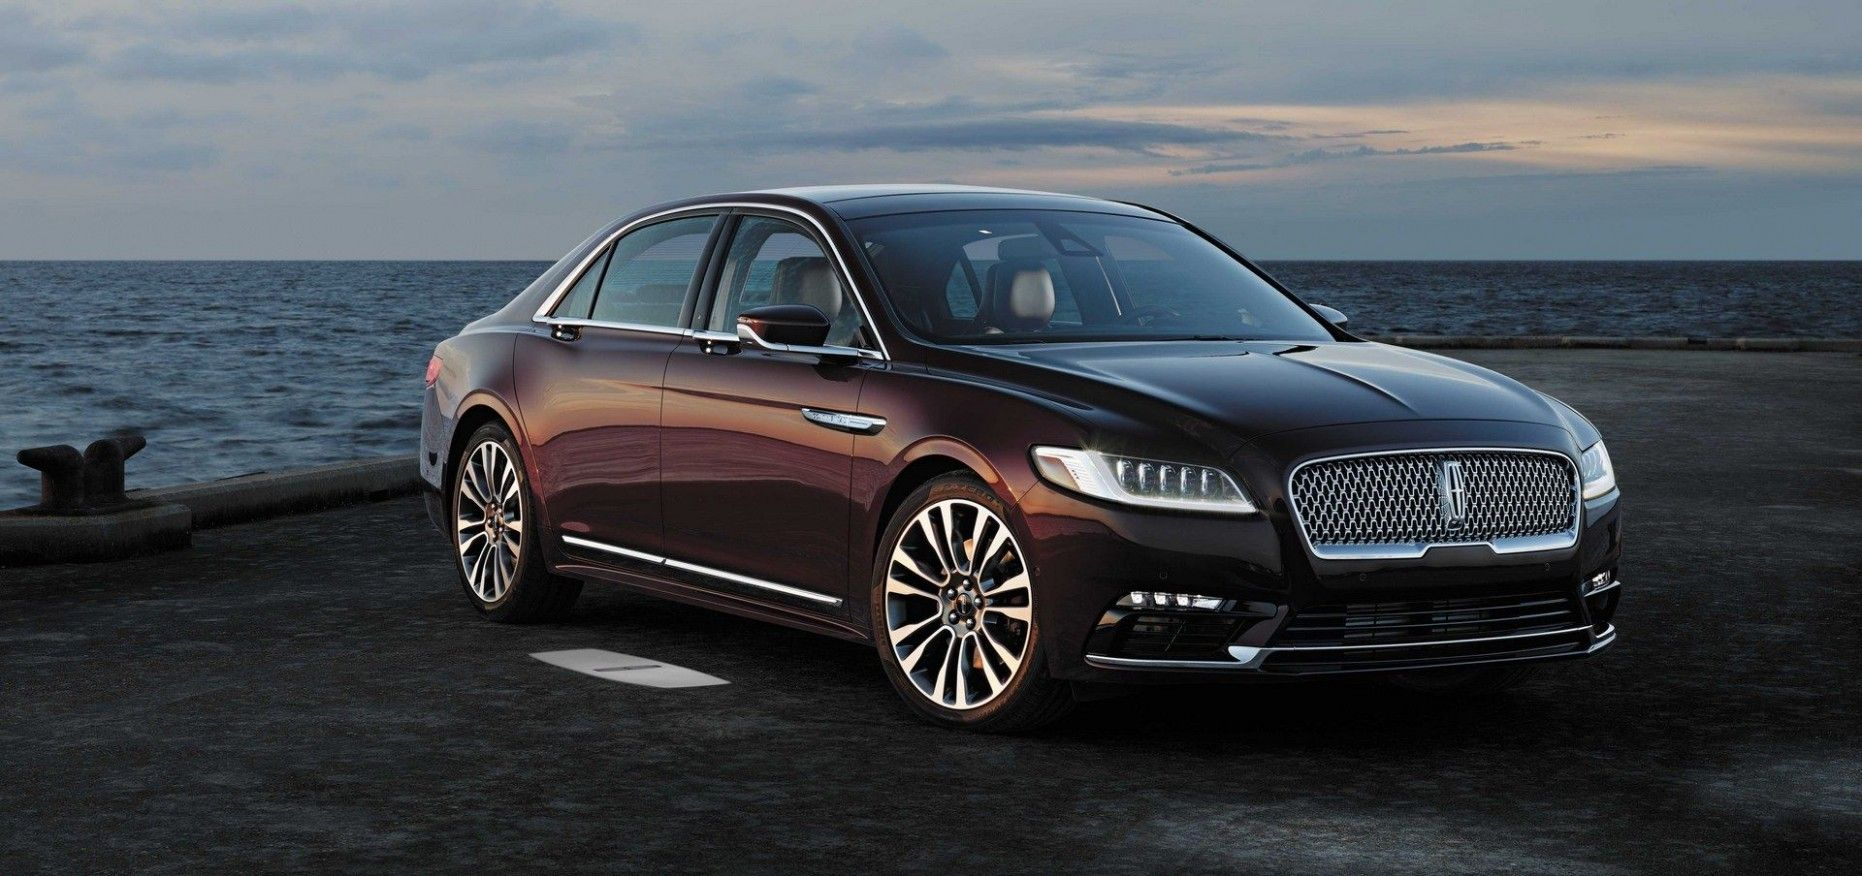 2021 Lincoln Town Car Specs And in 2020 Lincoln town car